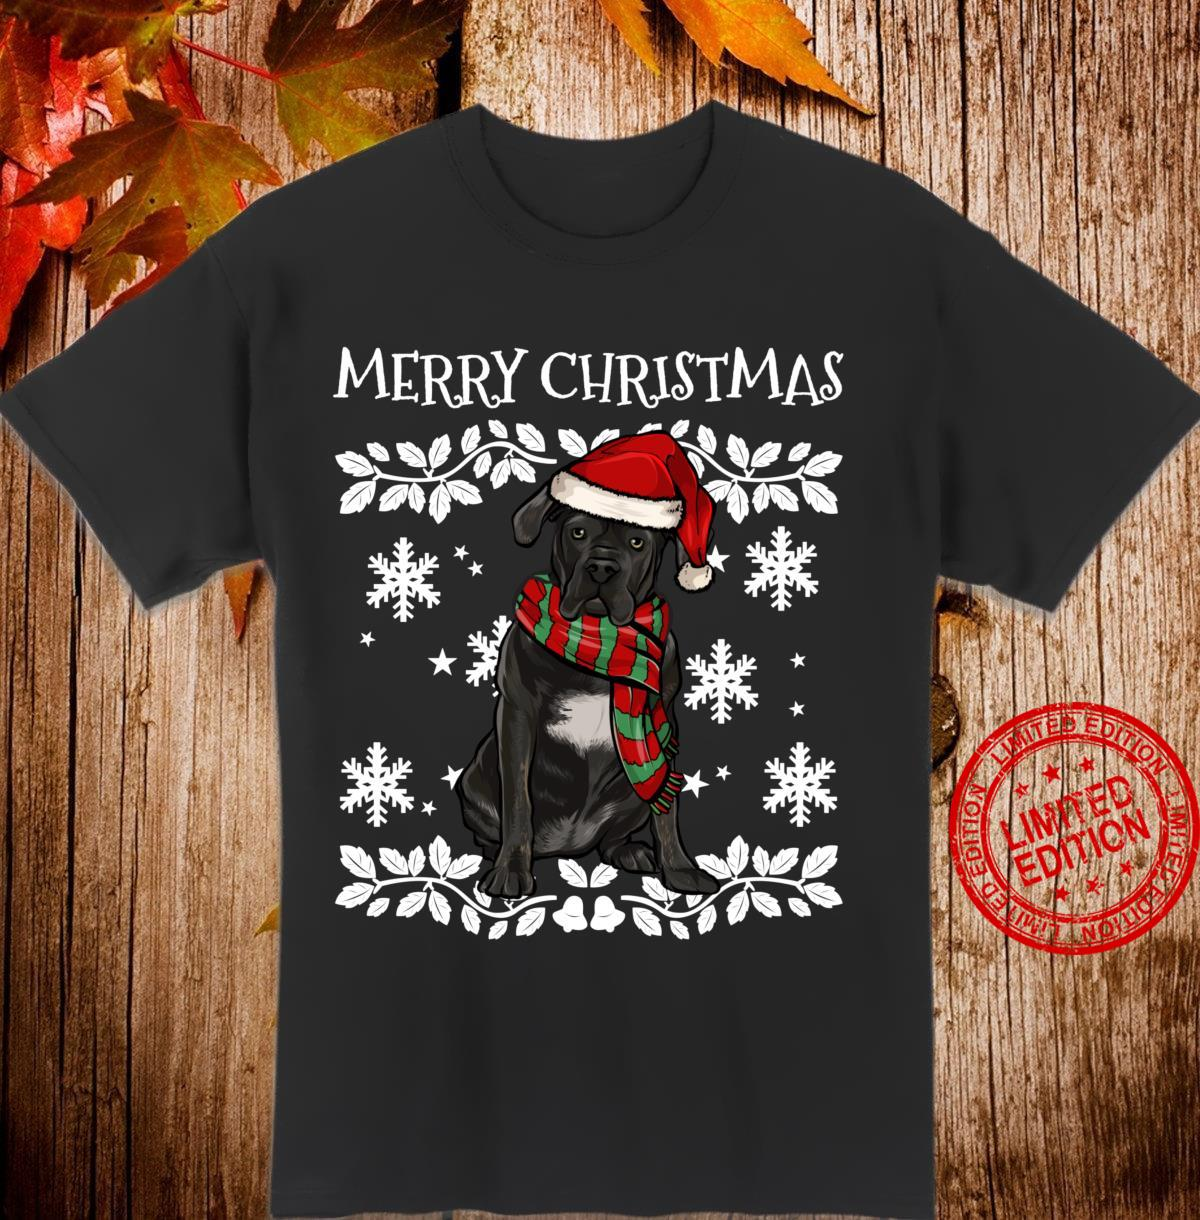 Merry Christmas Ornament Cane Corso Xmas Santa Shirt